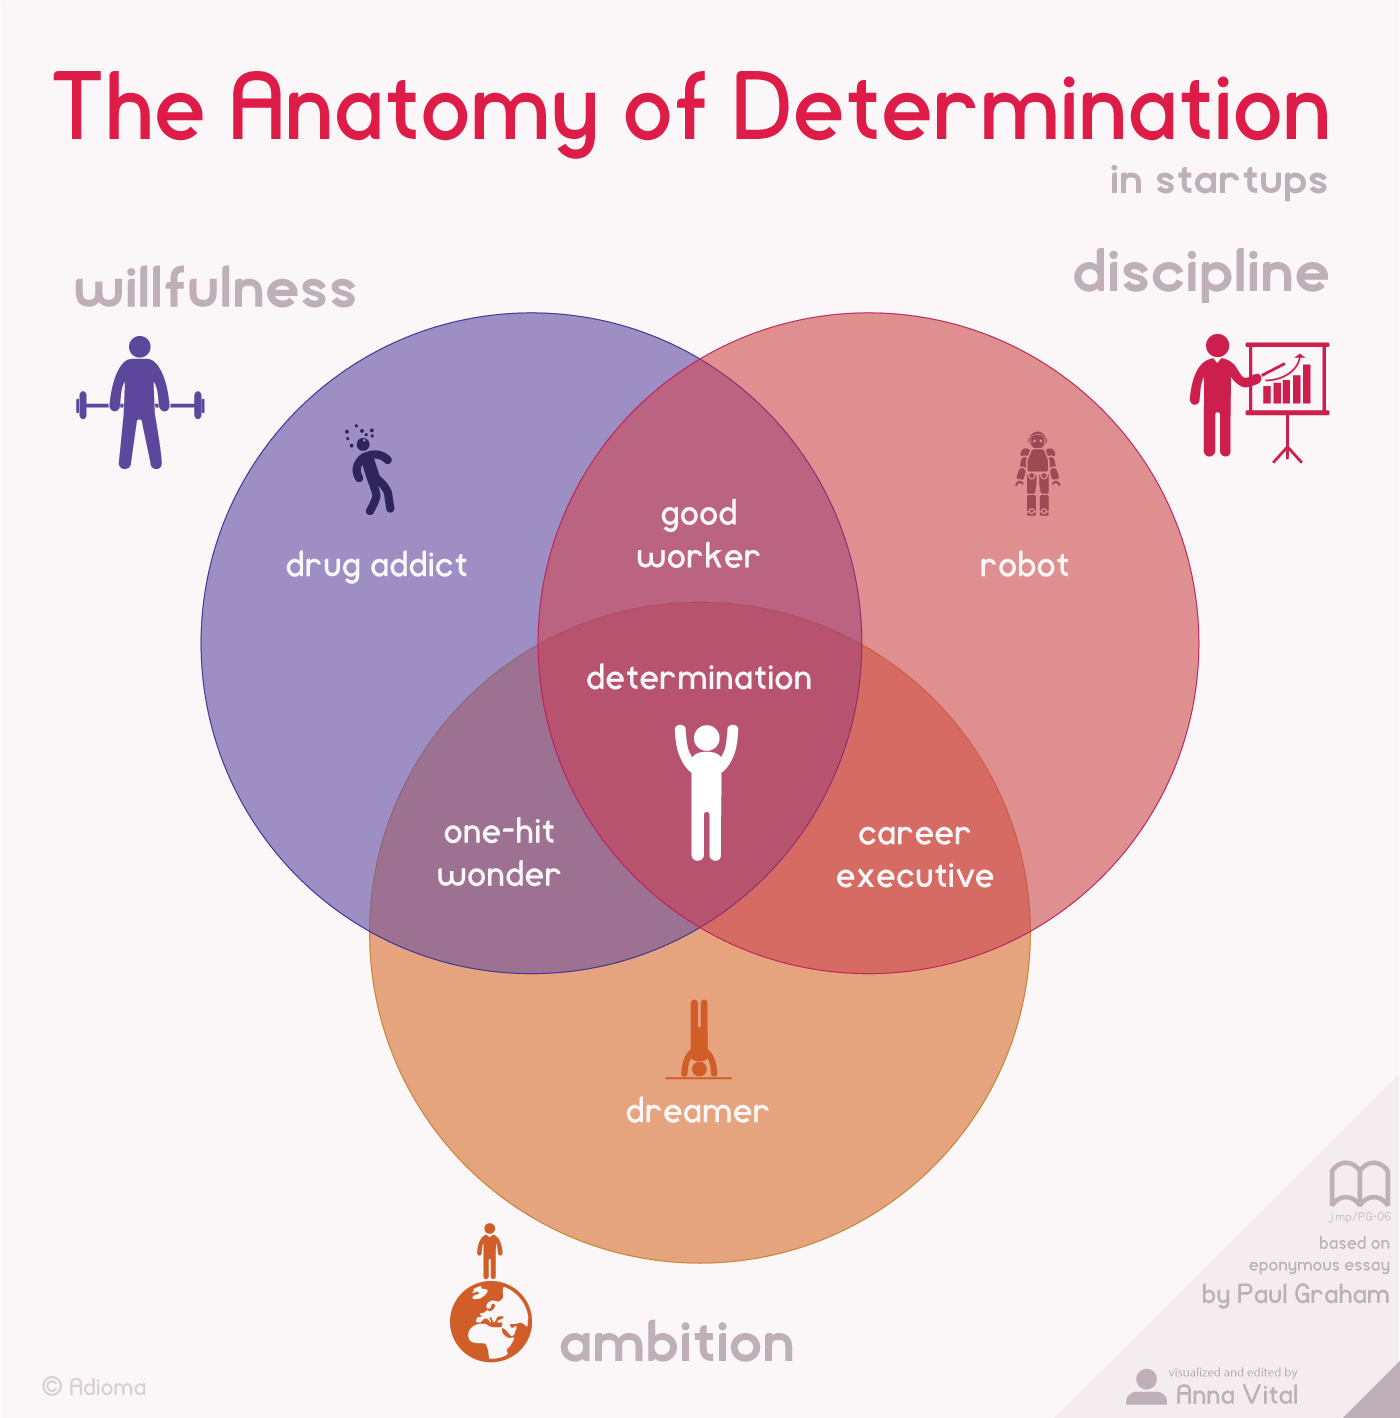 the anatomy of determination in startups - infographic